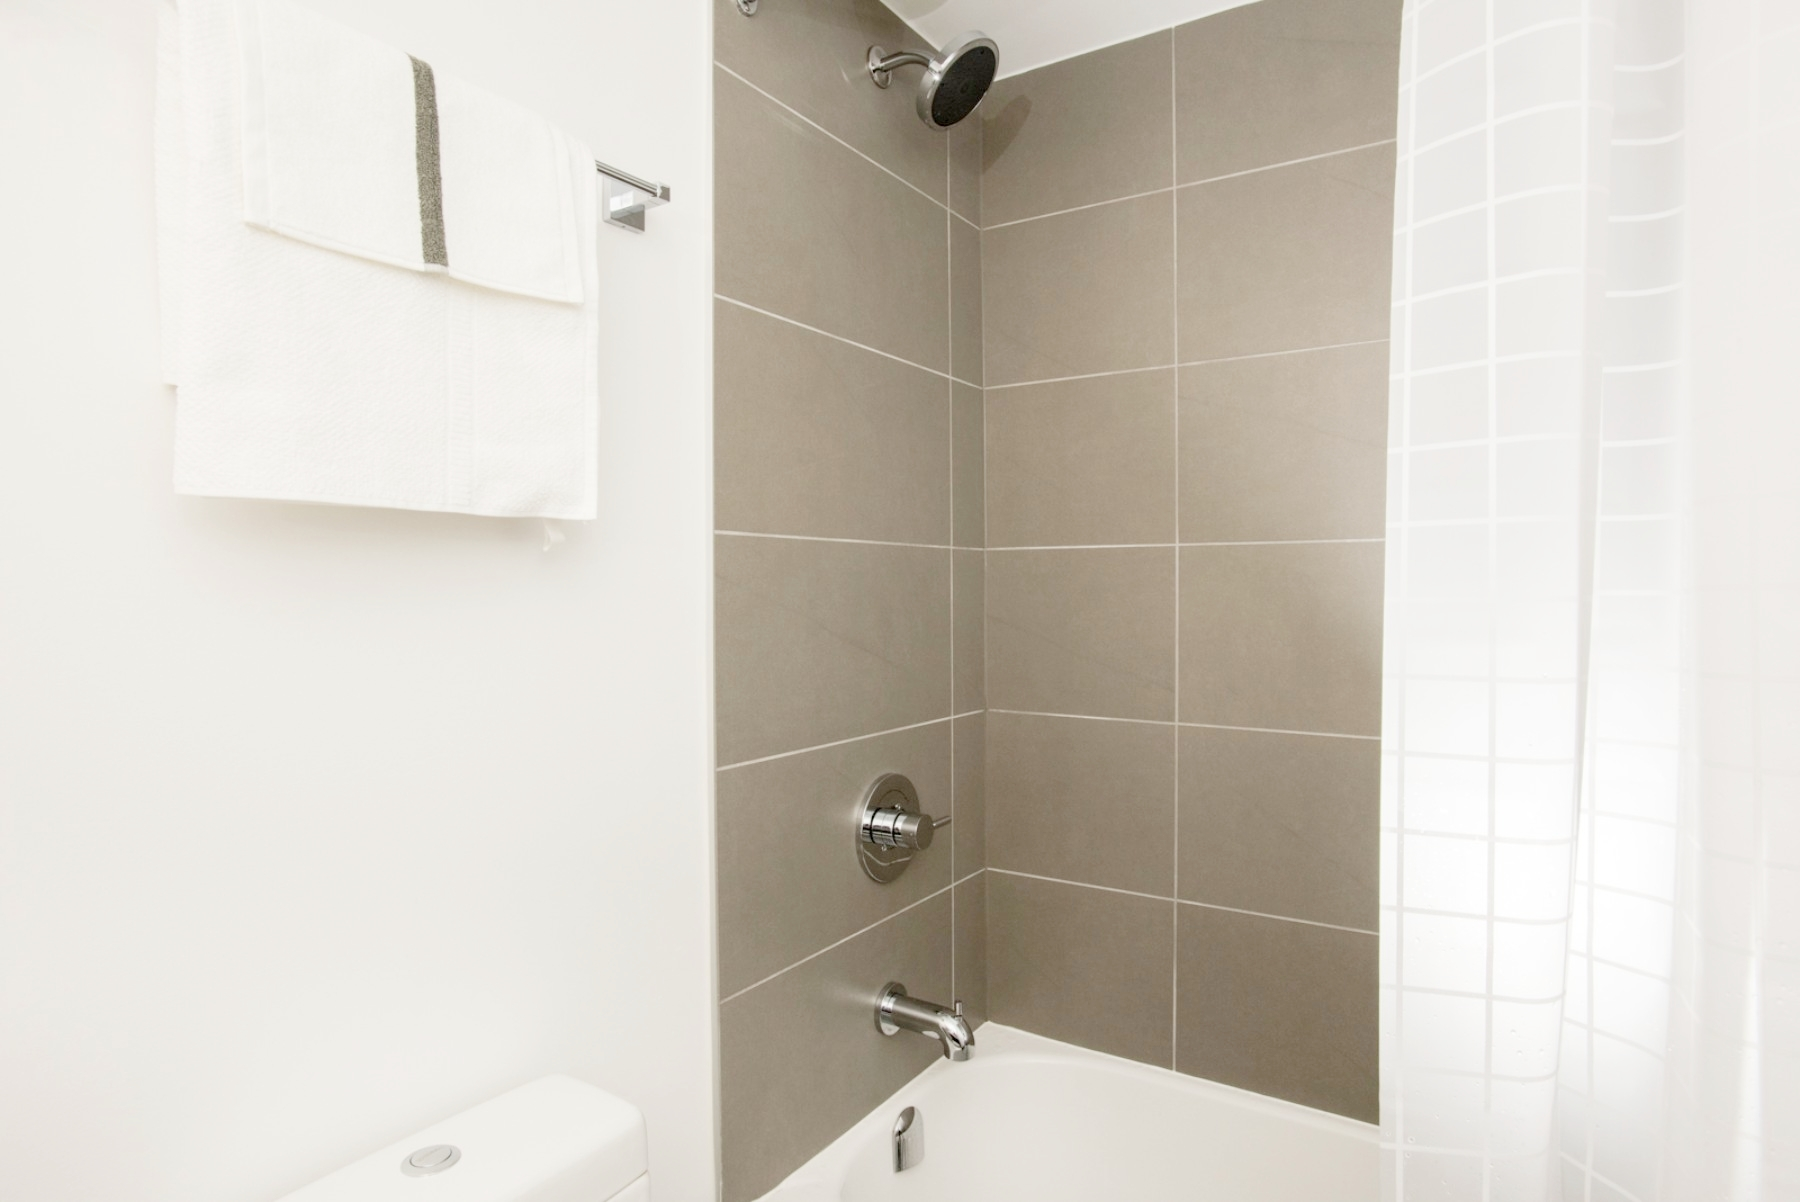 Yorkville Luxury Furnished Condo - Shower